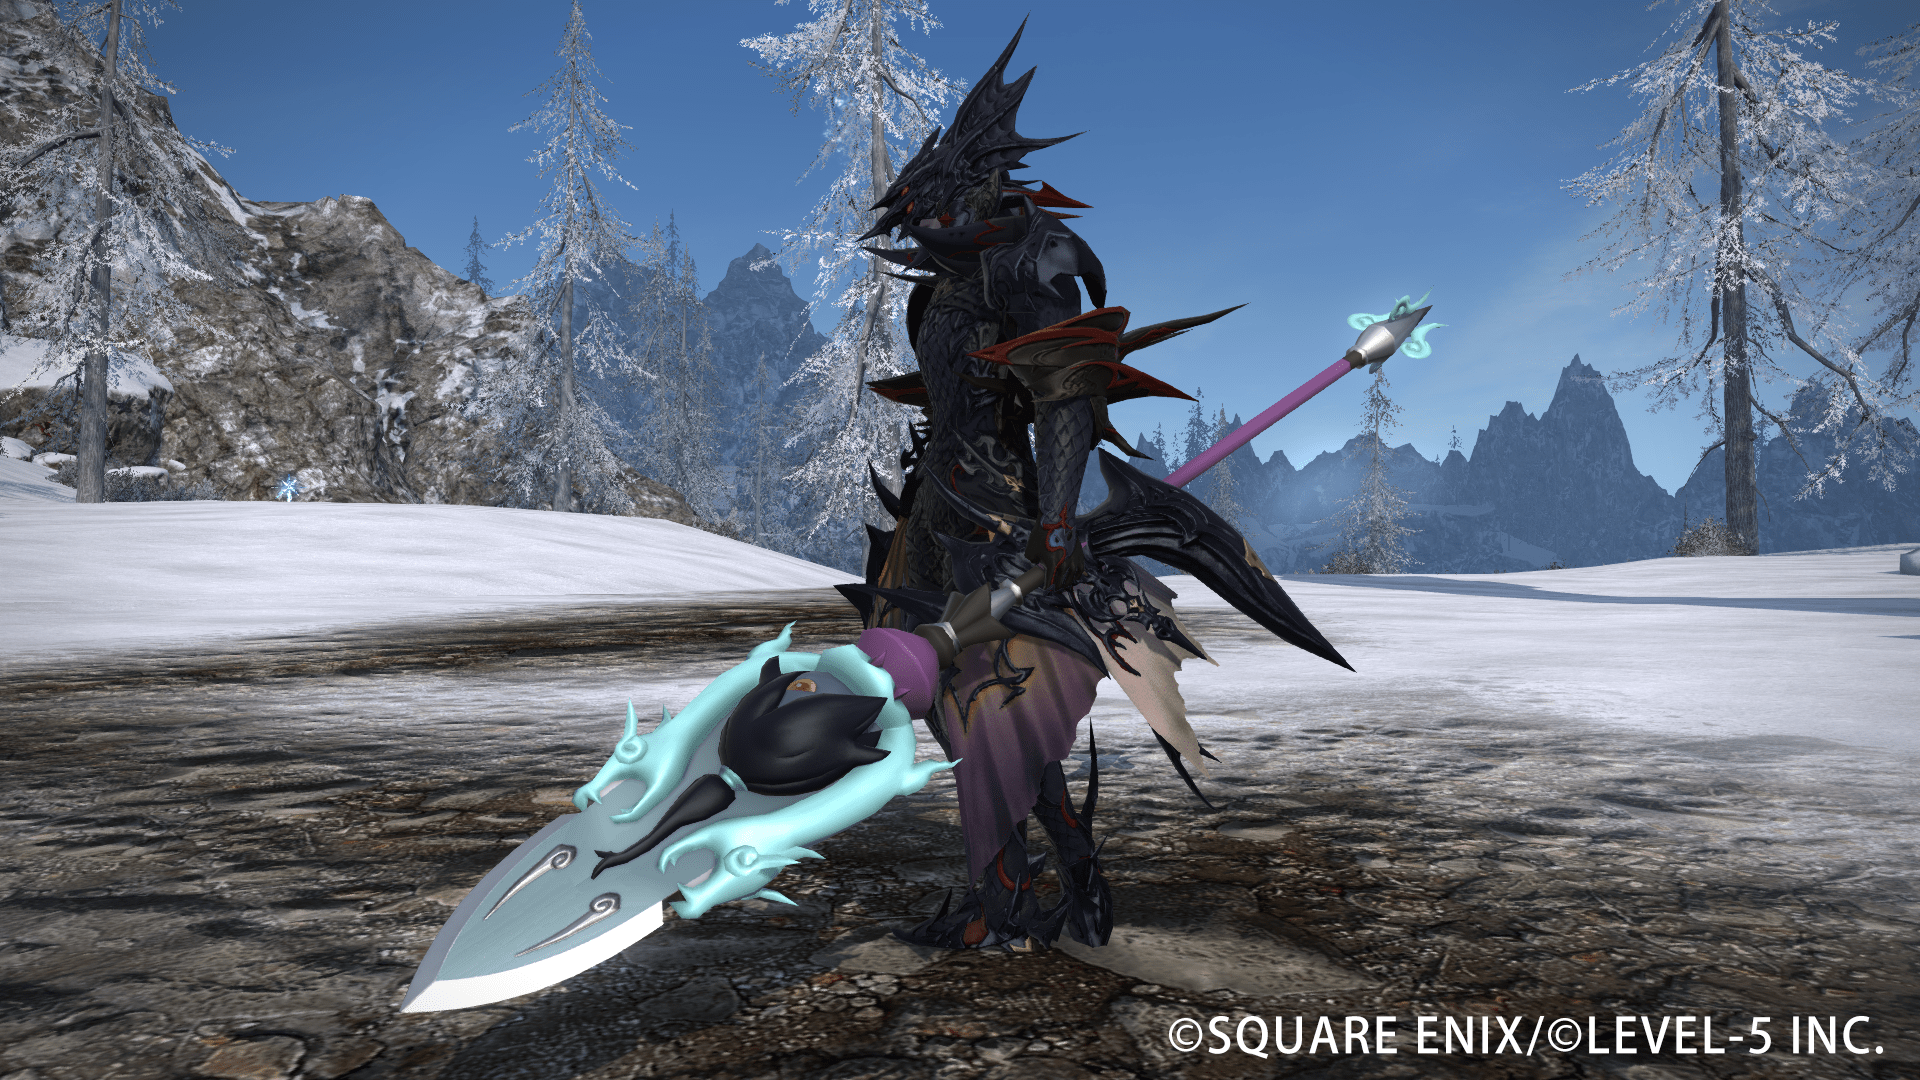 FFXIV_WeaponScreenshot_Spear_of_the_Spark_Serpent_25052016_1464174296